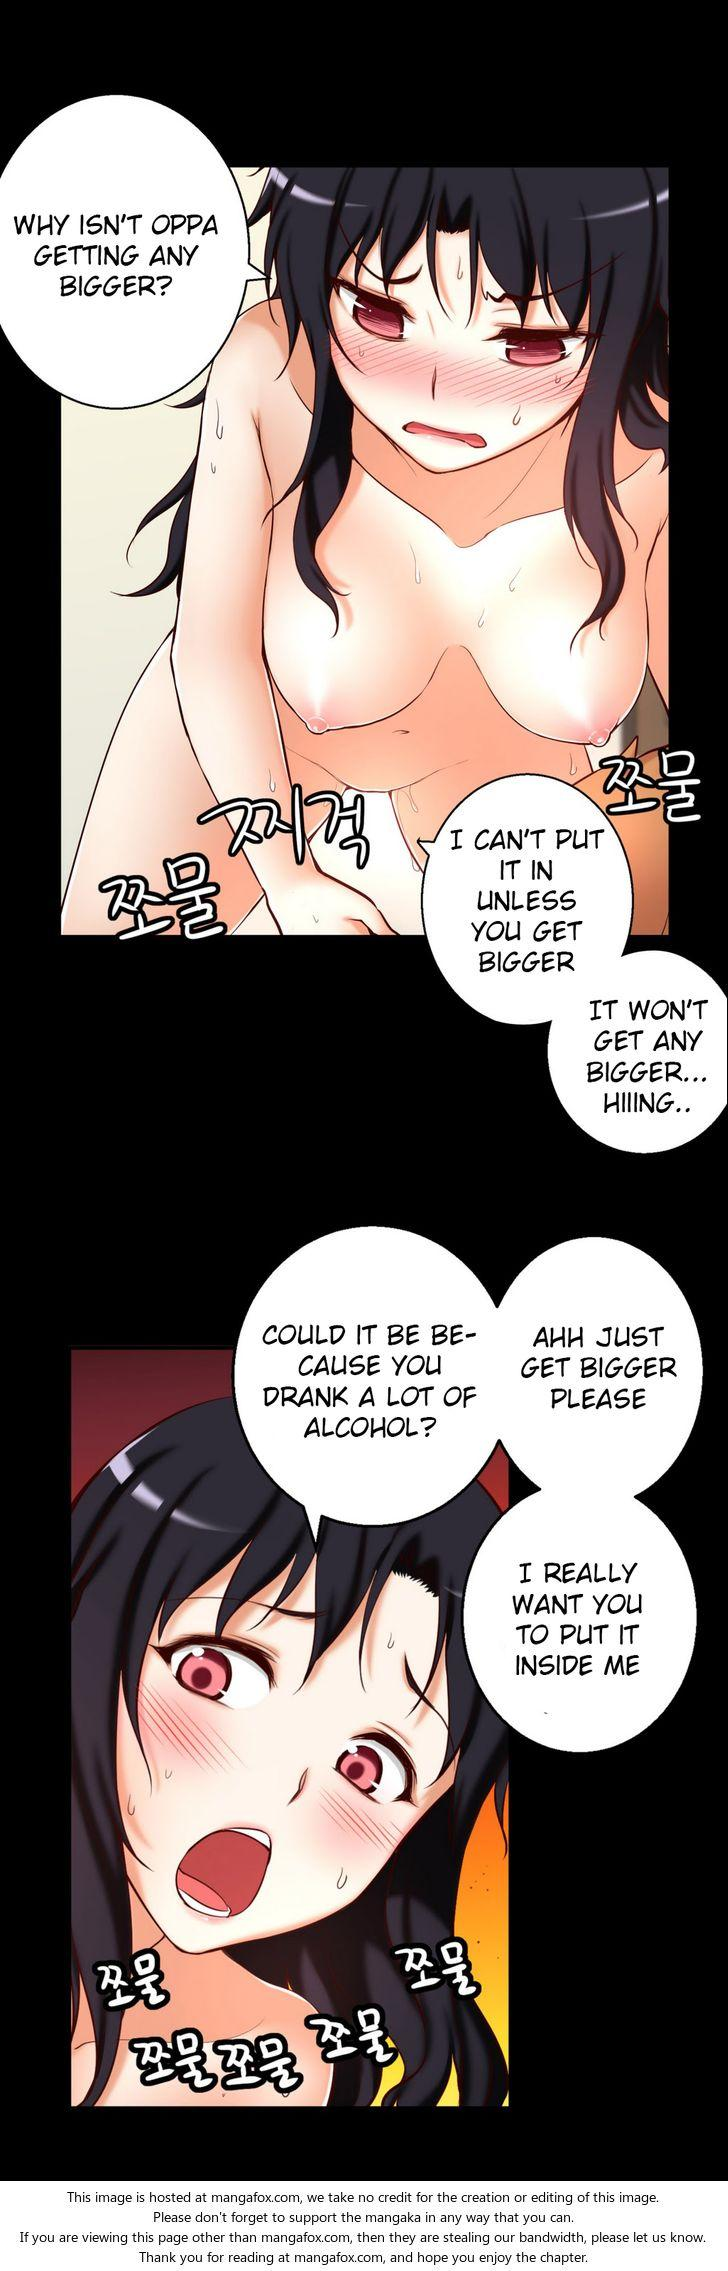 [Donggul Gom] She is Young (English) Part 1/2 593